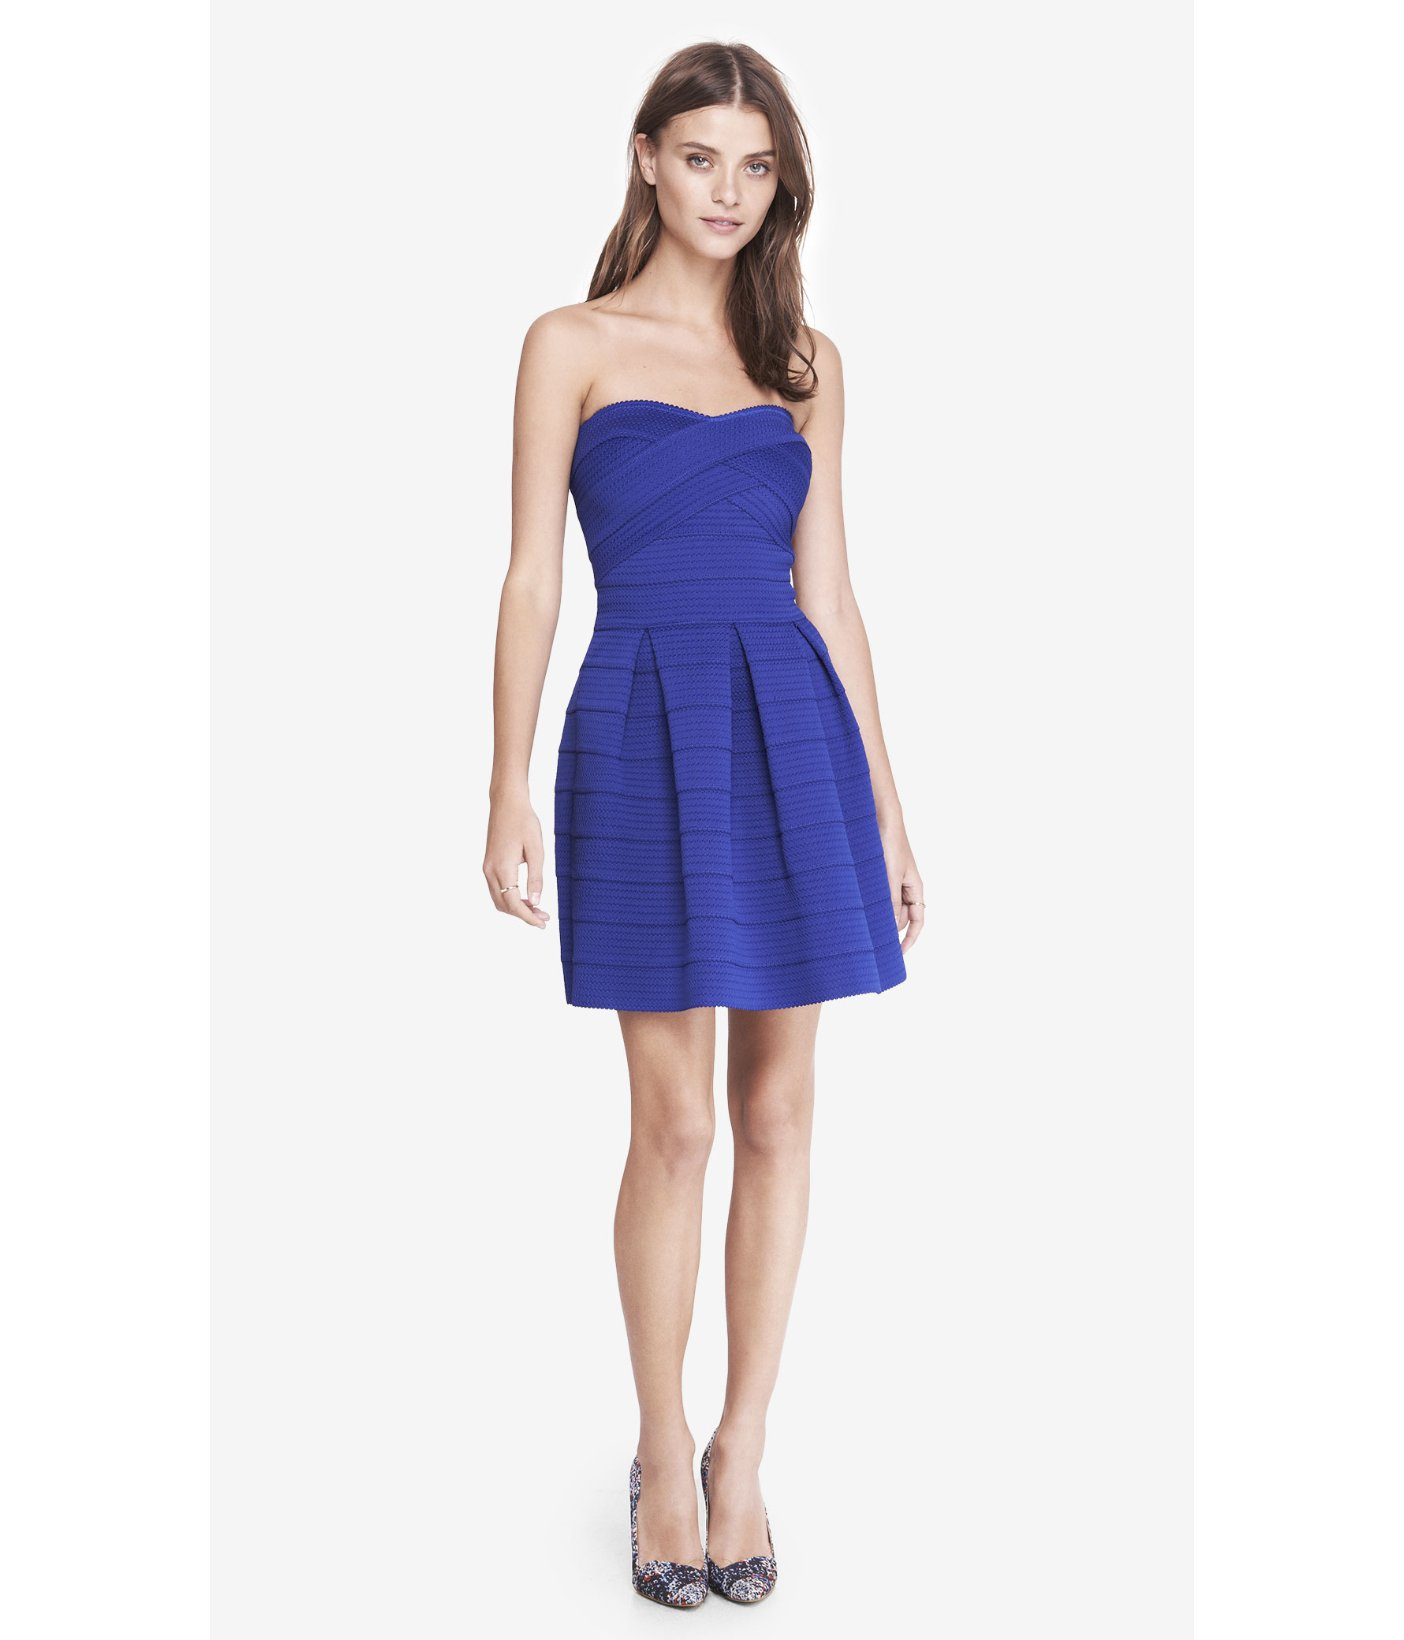 Find great deals on eBay for blue flare dress. Shop with confidence.